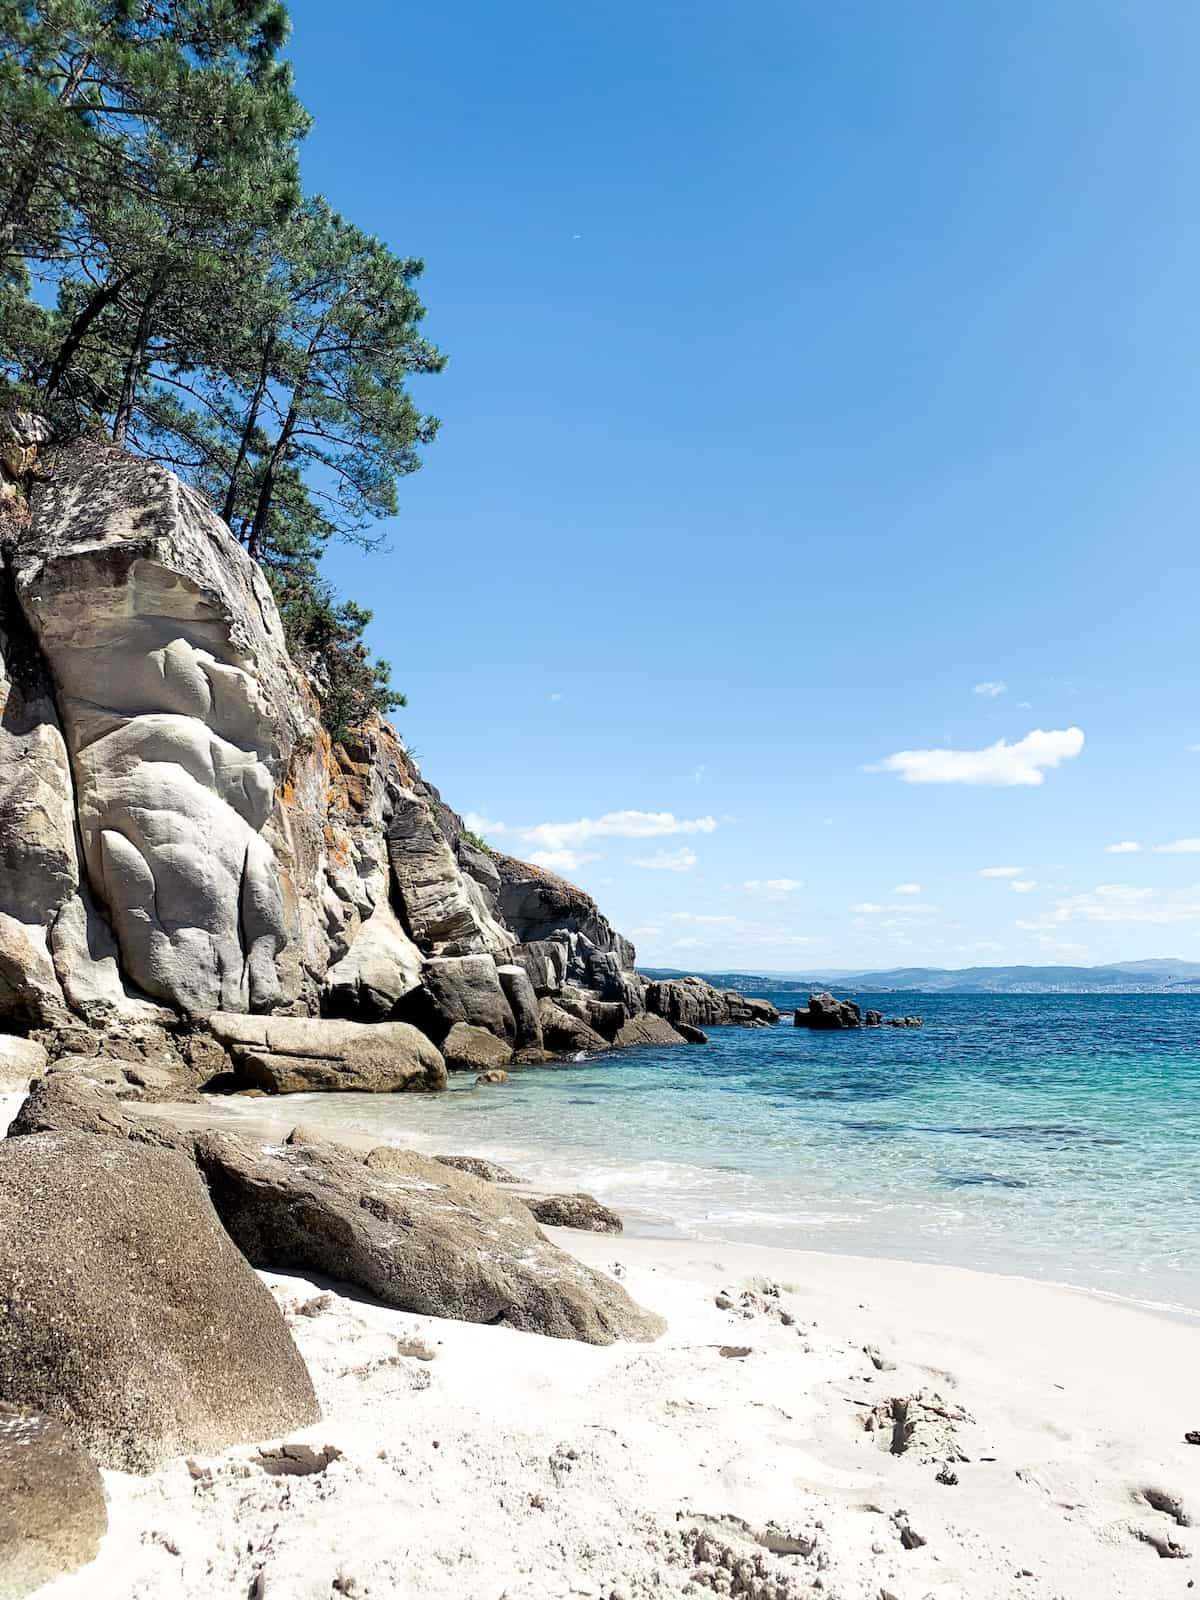 White sand beach surrounded by rocks